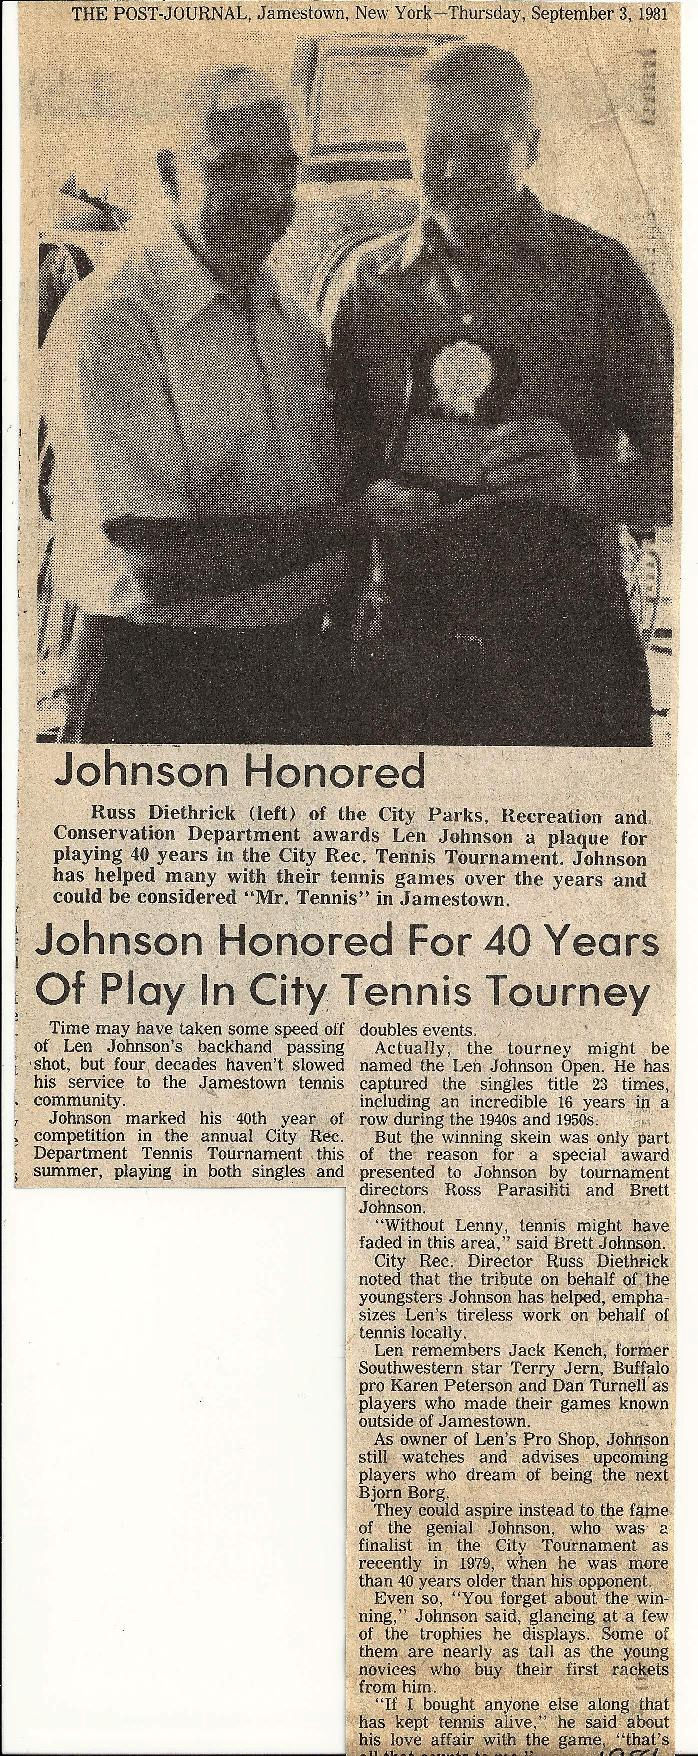 Johnson Honored For 40 Years Of Play In City Tennis Tourney